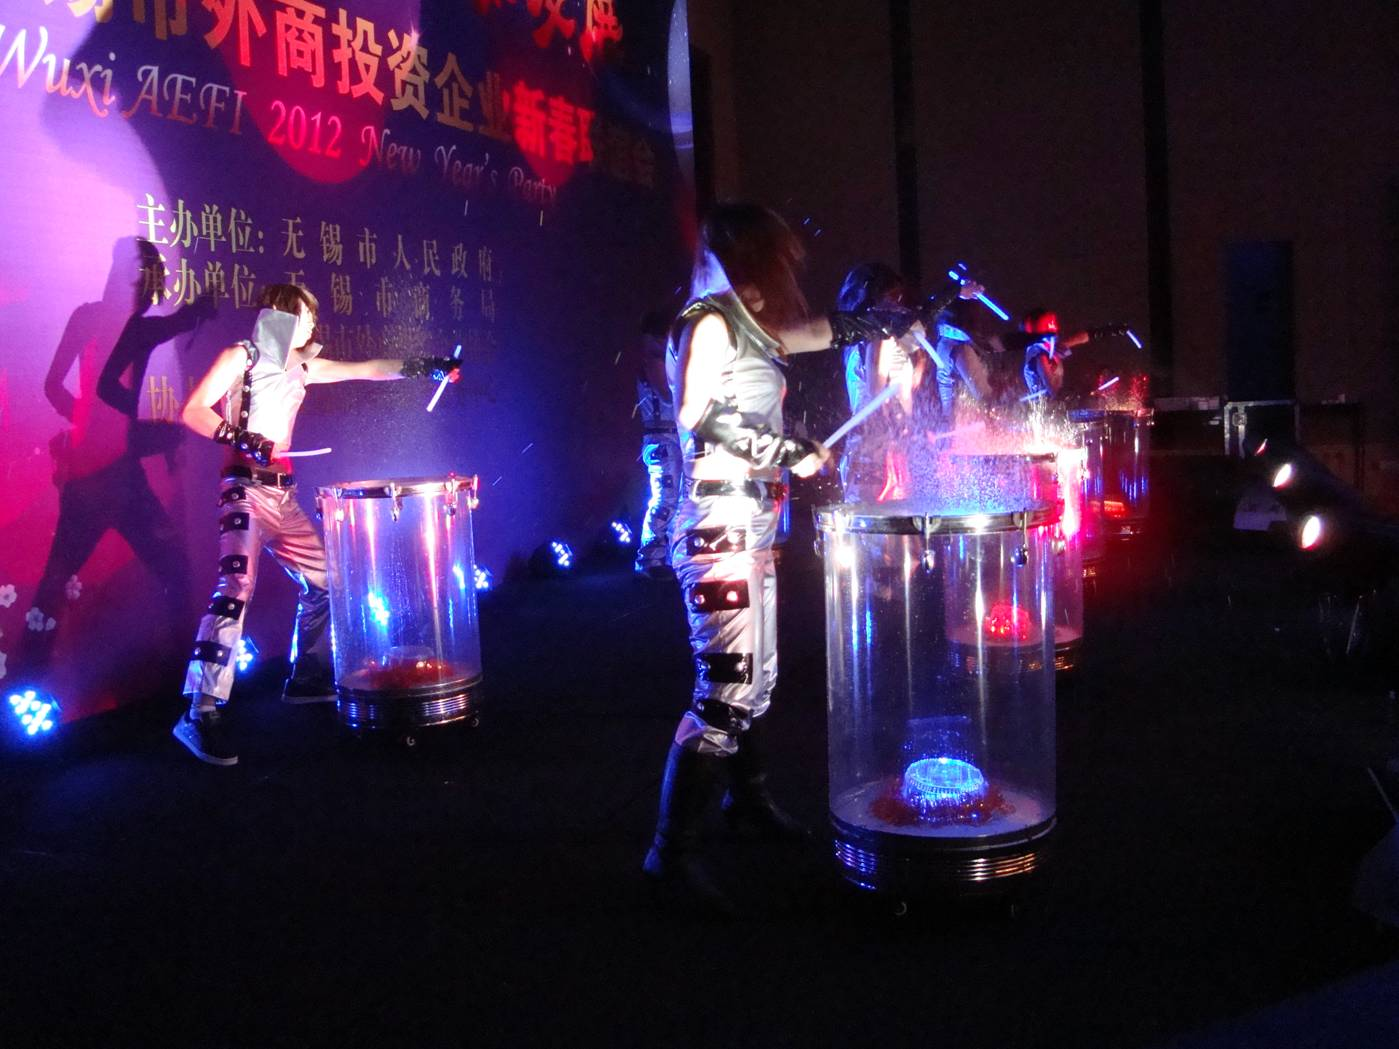 A quarter inch of water on the drum heads added a lot to the theatricality of the water drum performance.  Wuxi, China